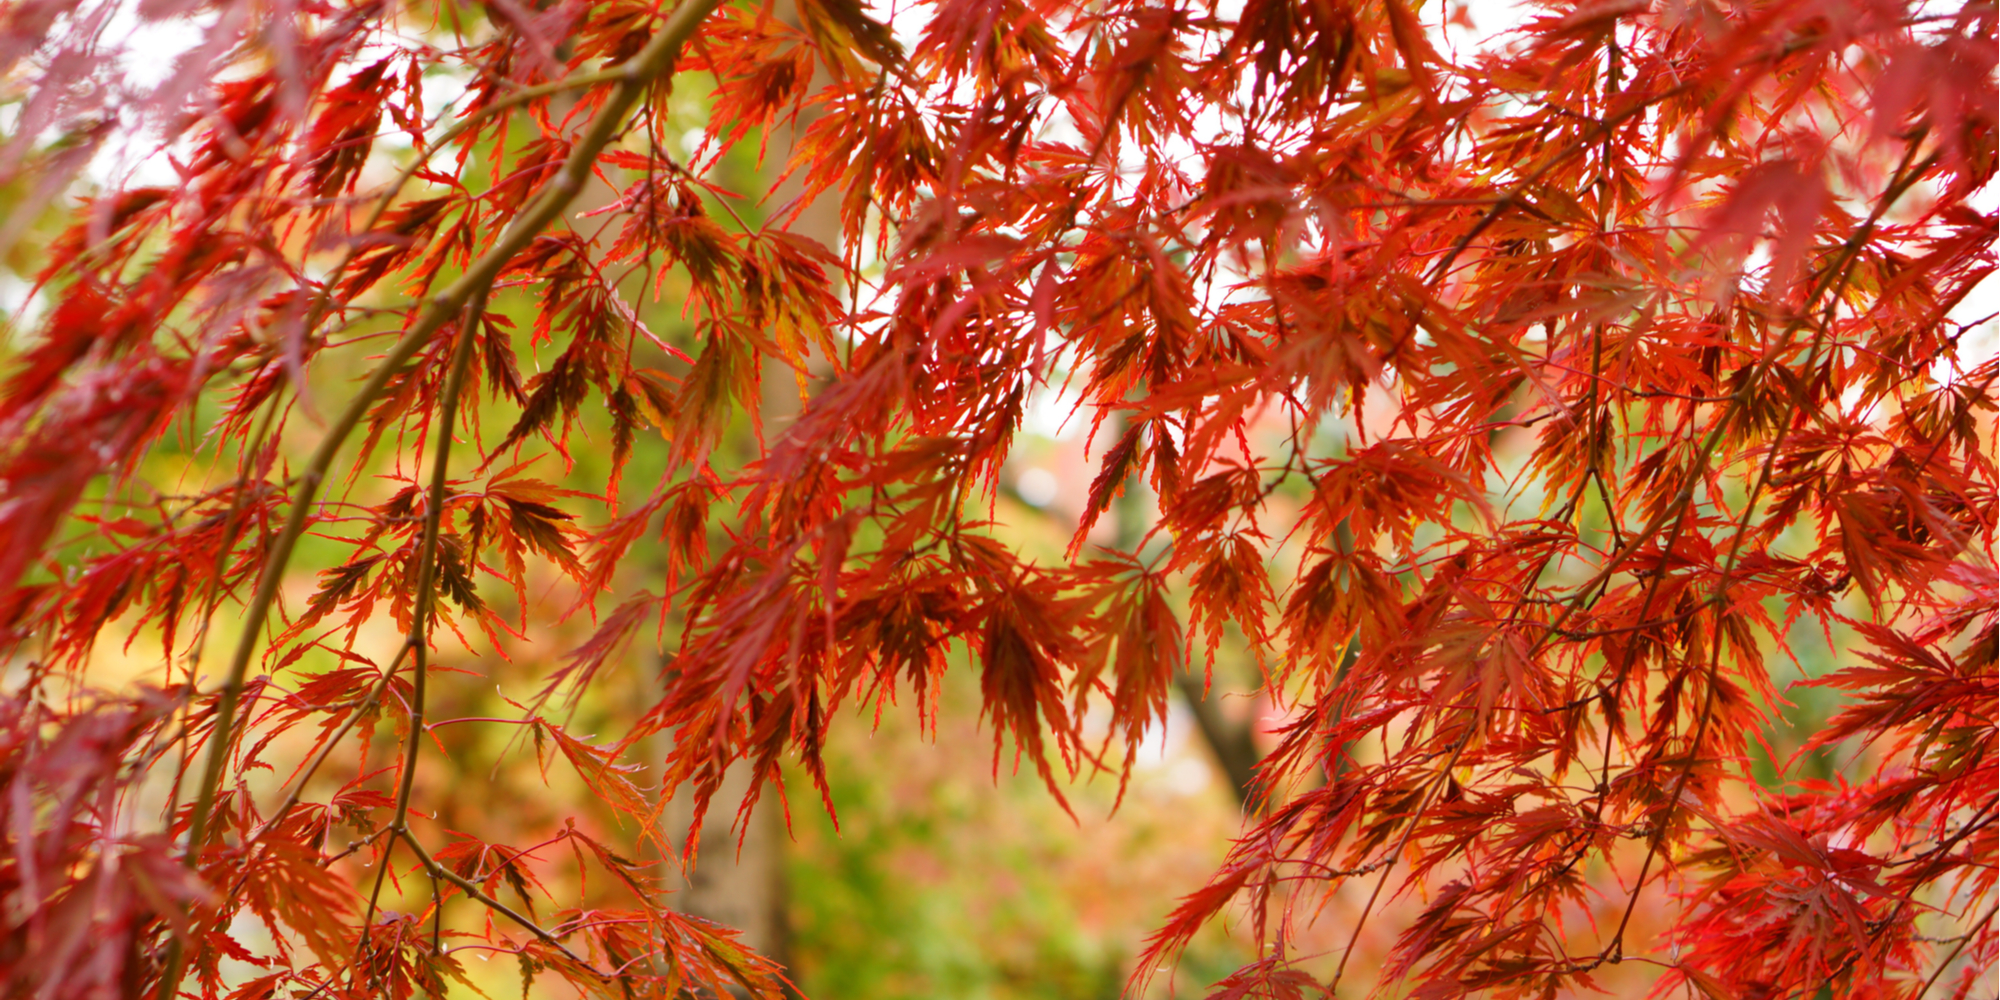 If you want to add the beautiful colors to your yard, you will need these trees with fall color. You will fall in love with them!